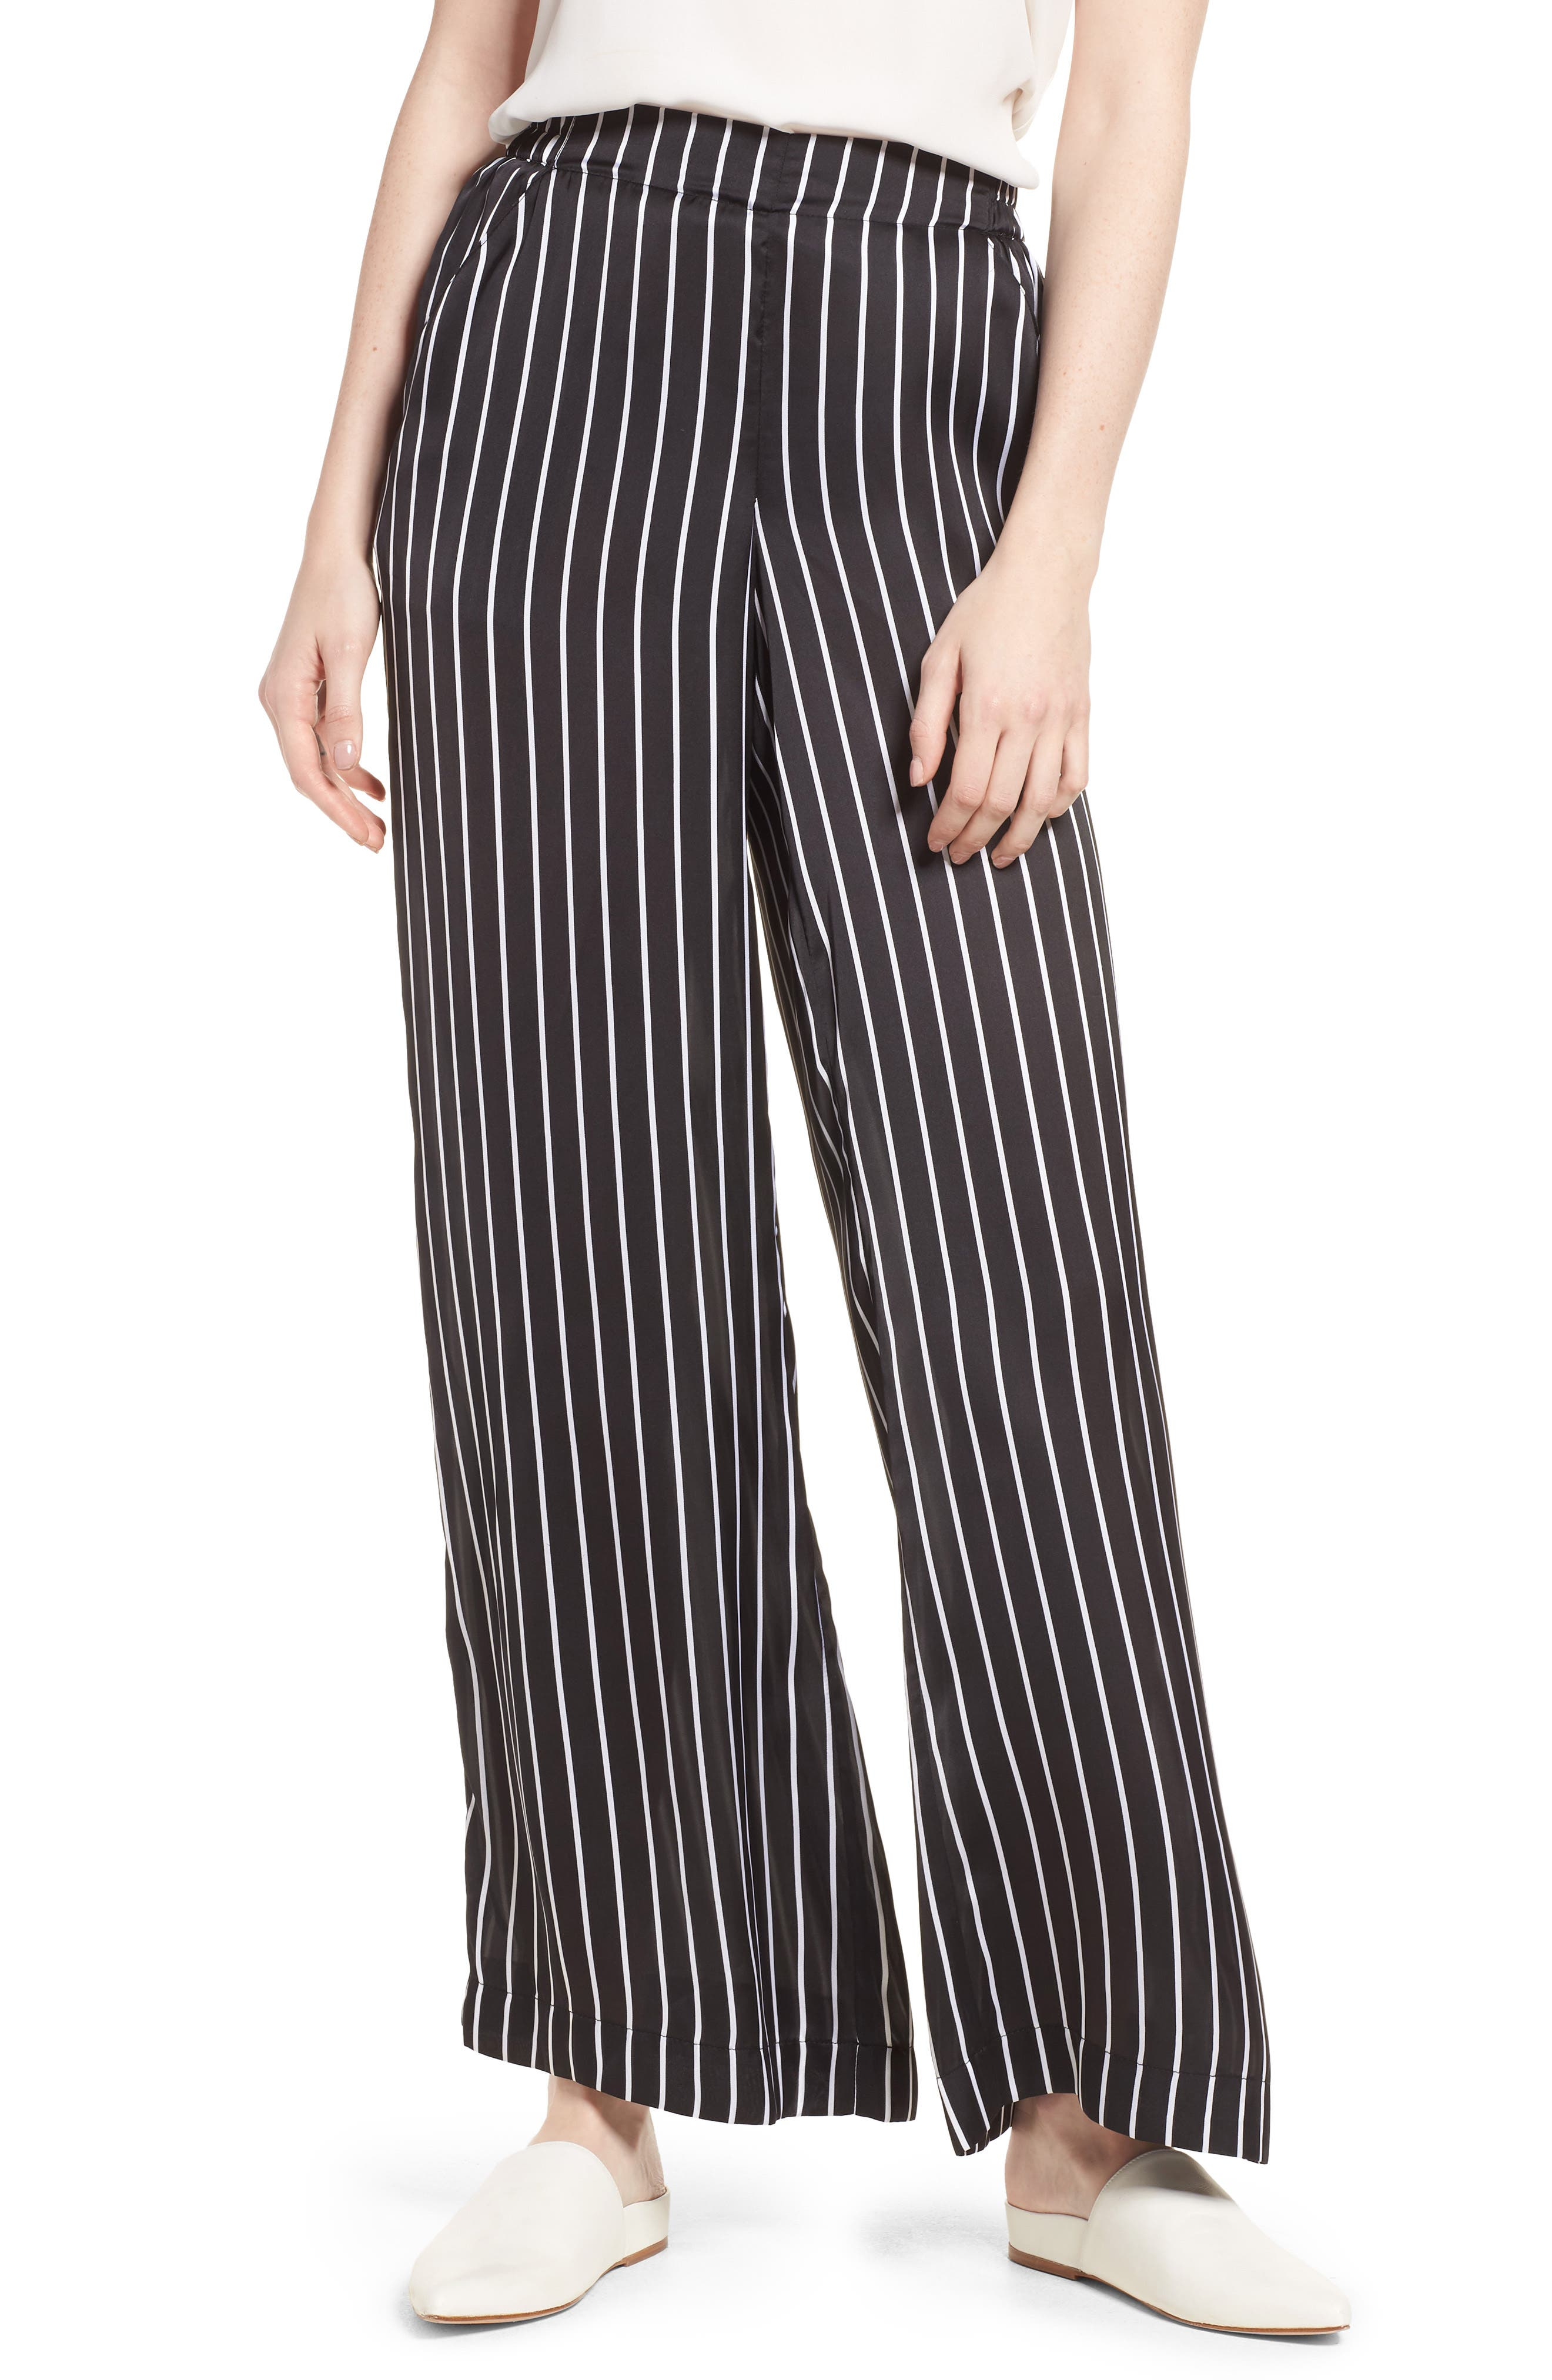 Kenneth Cole Wide Leg Pants,                         Main,                         color, STREET STRIPE BLACK